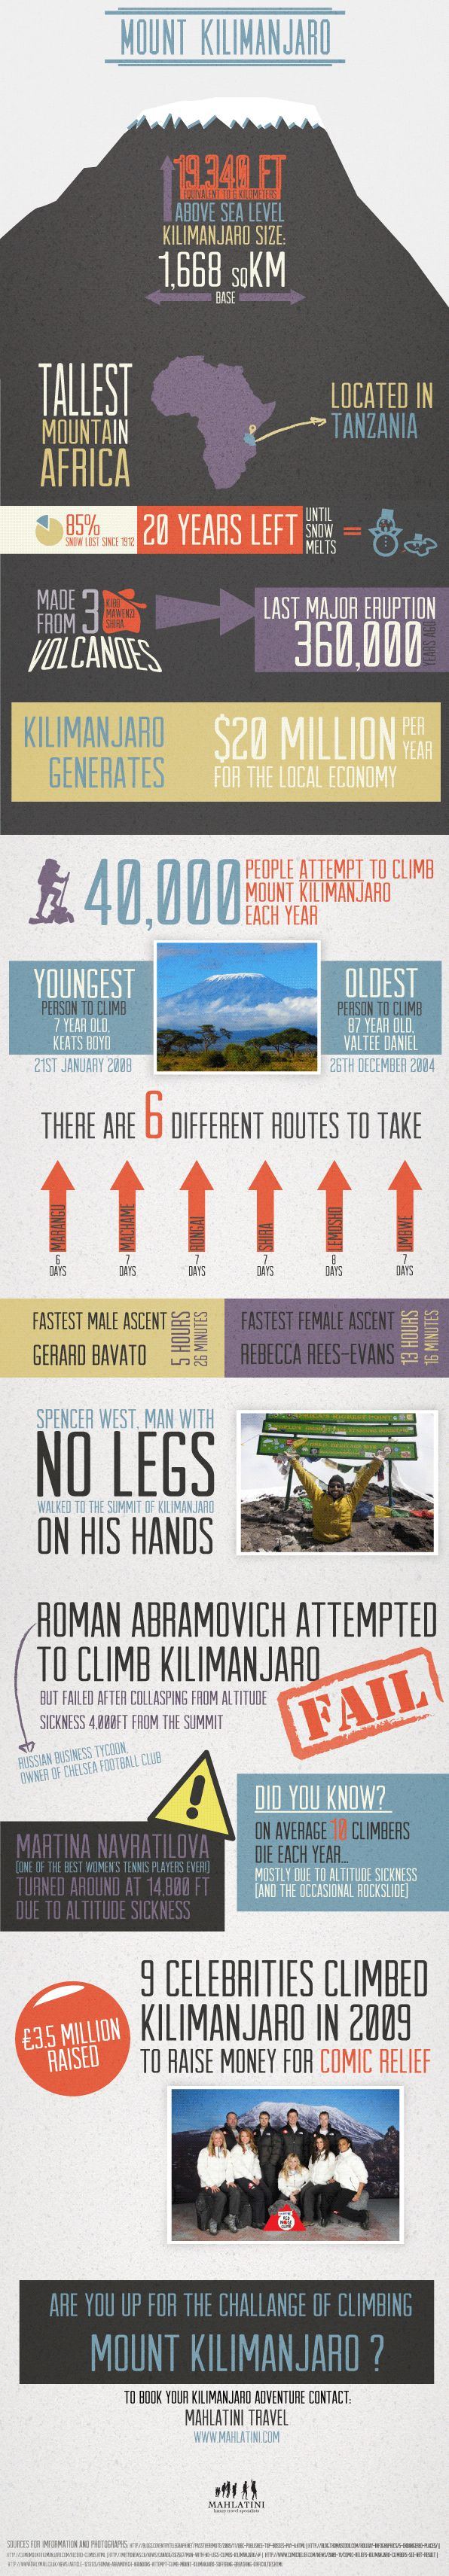 Kilimanjaro: The Facts.  Have recently been fixating on a trip to climb Kilimanjaro.